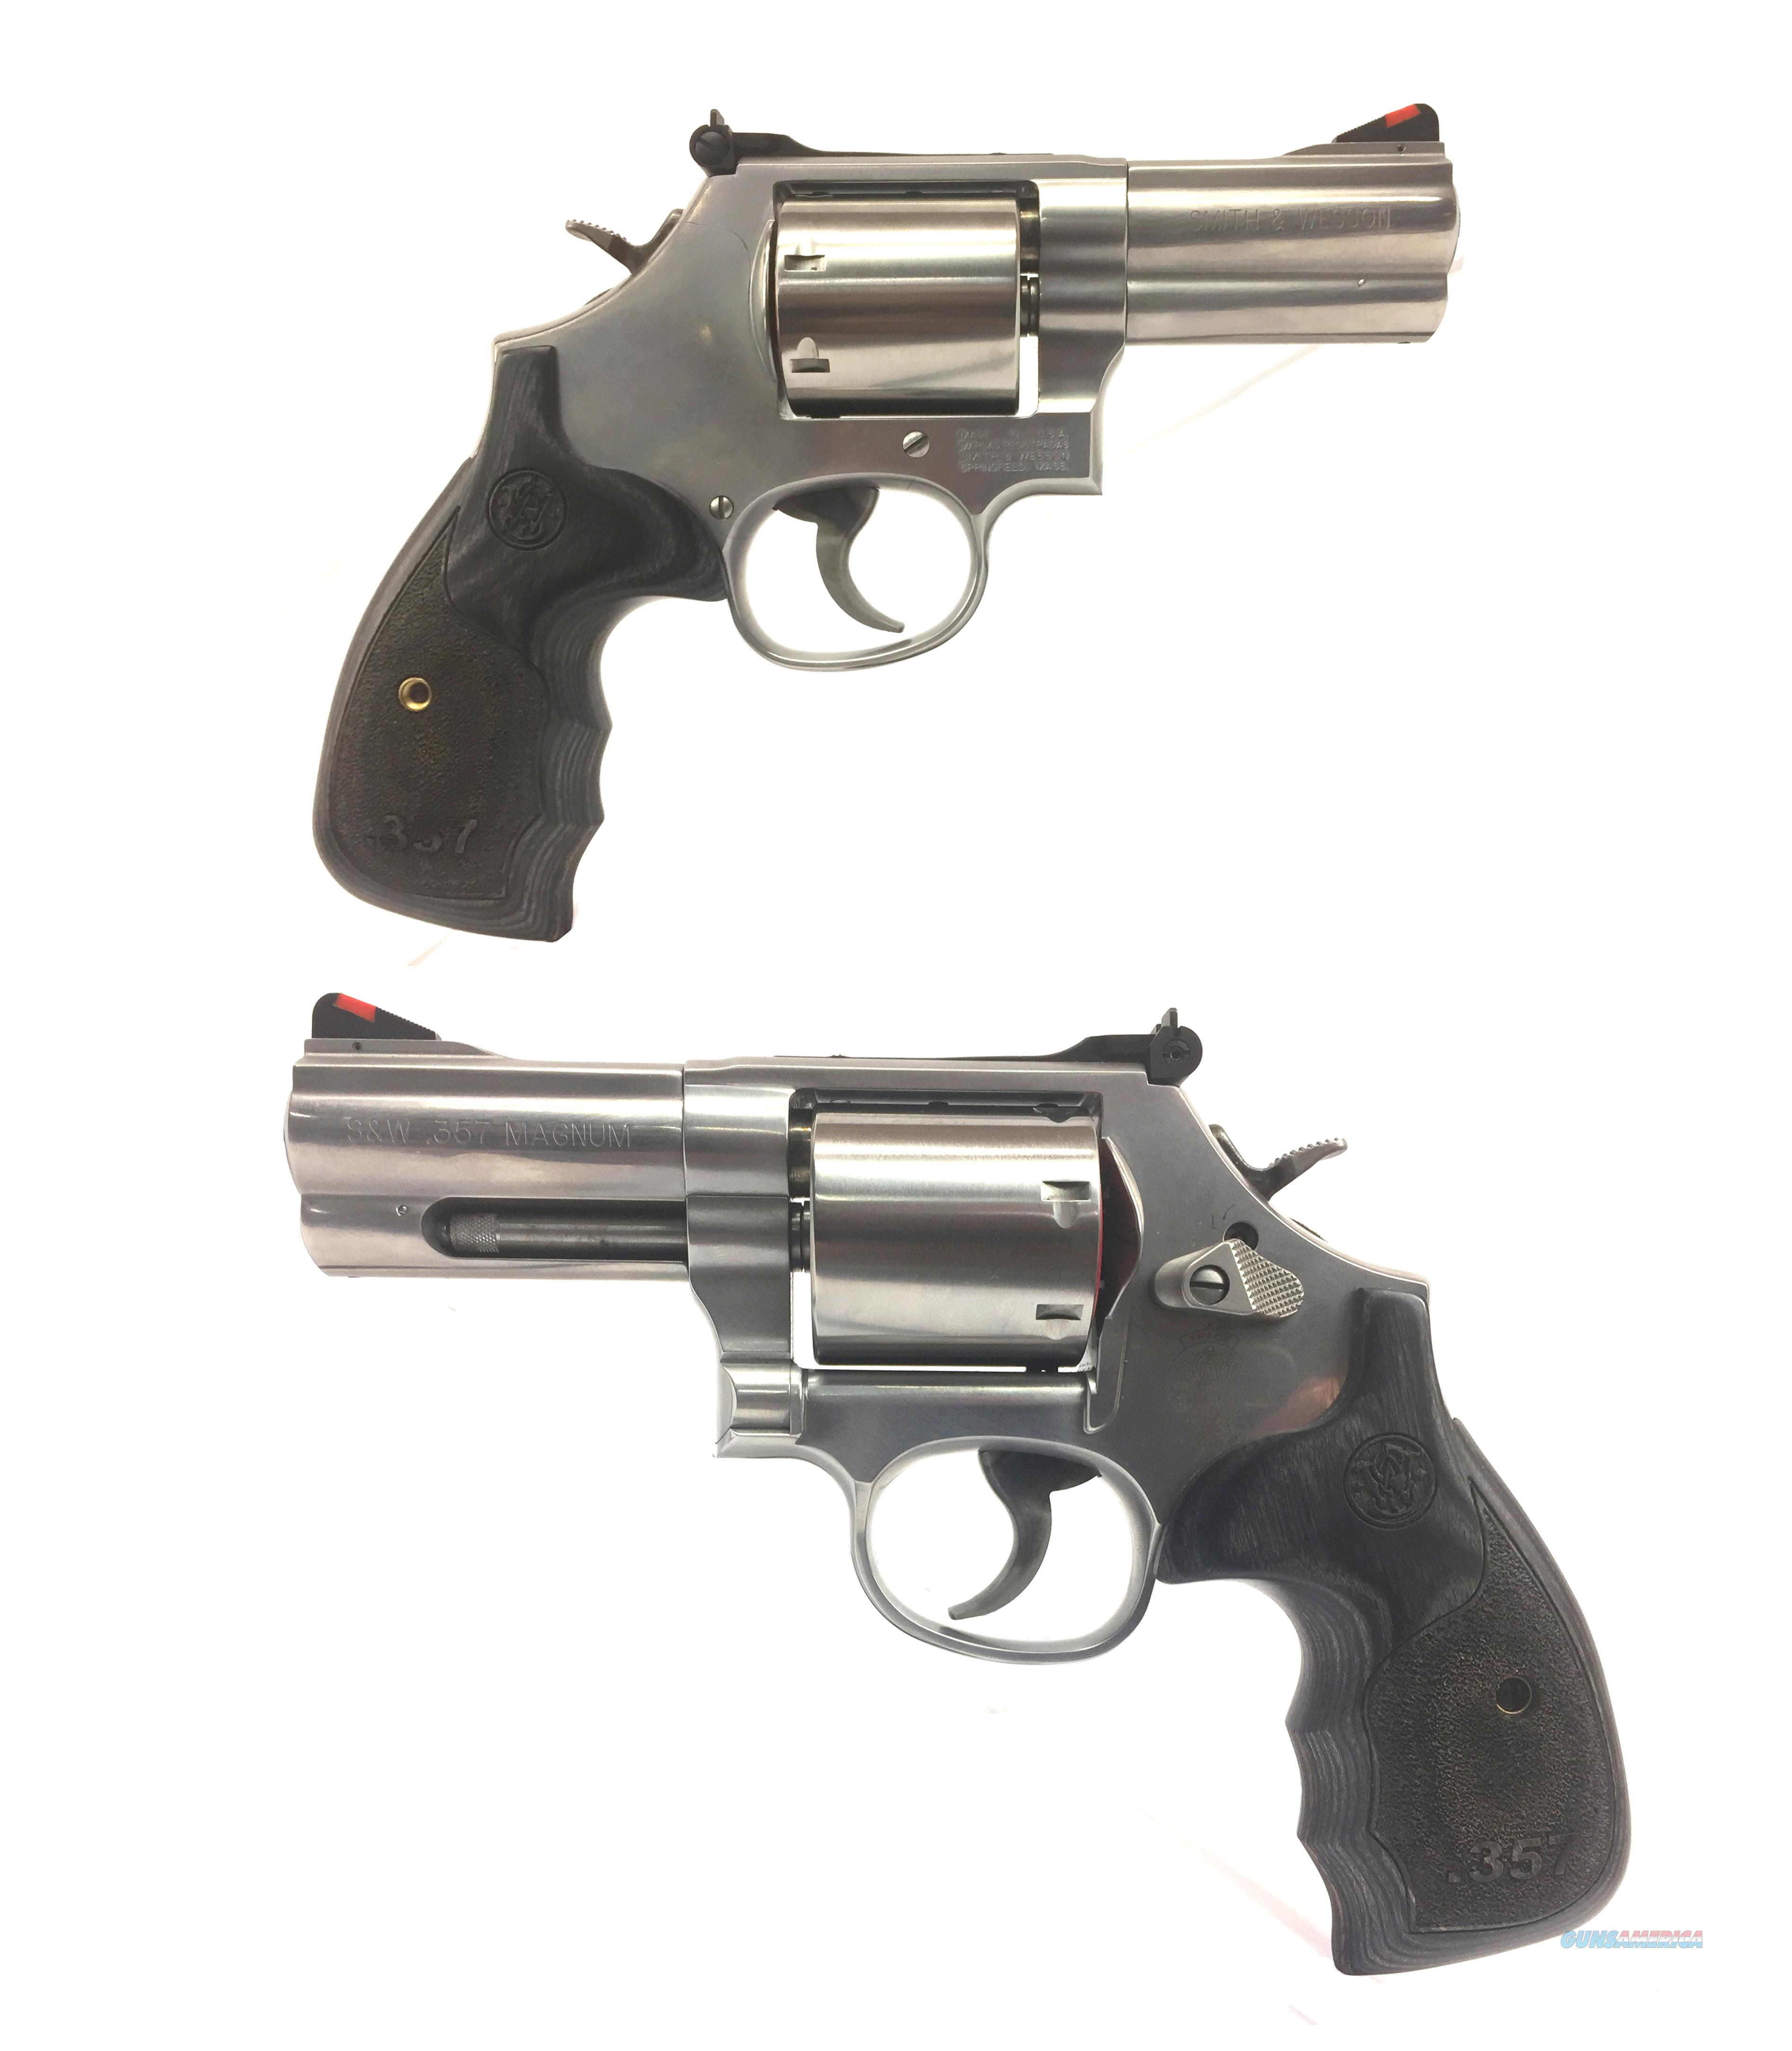 Smith & Wesson Model 686 .357 Magnum Revolver  Guns > Pistols > Smith & Wesson Revolvers > Med. Frame ( K/L )